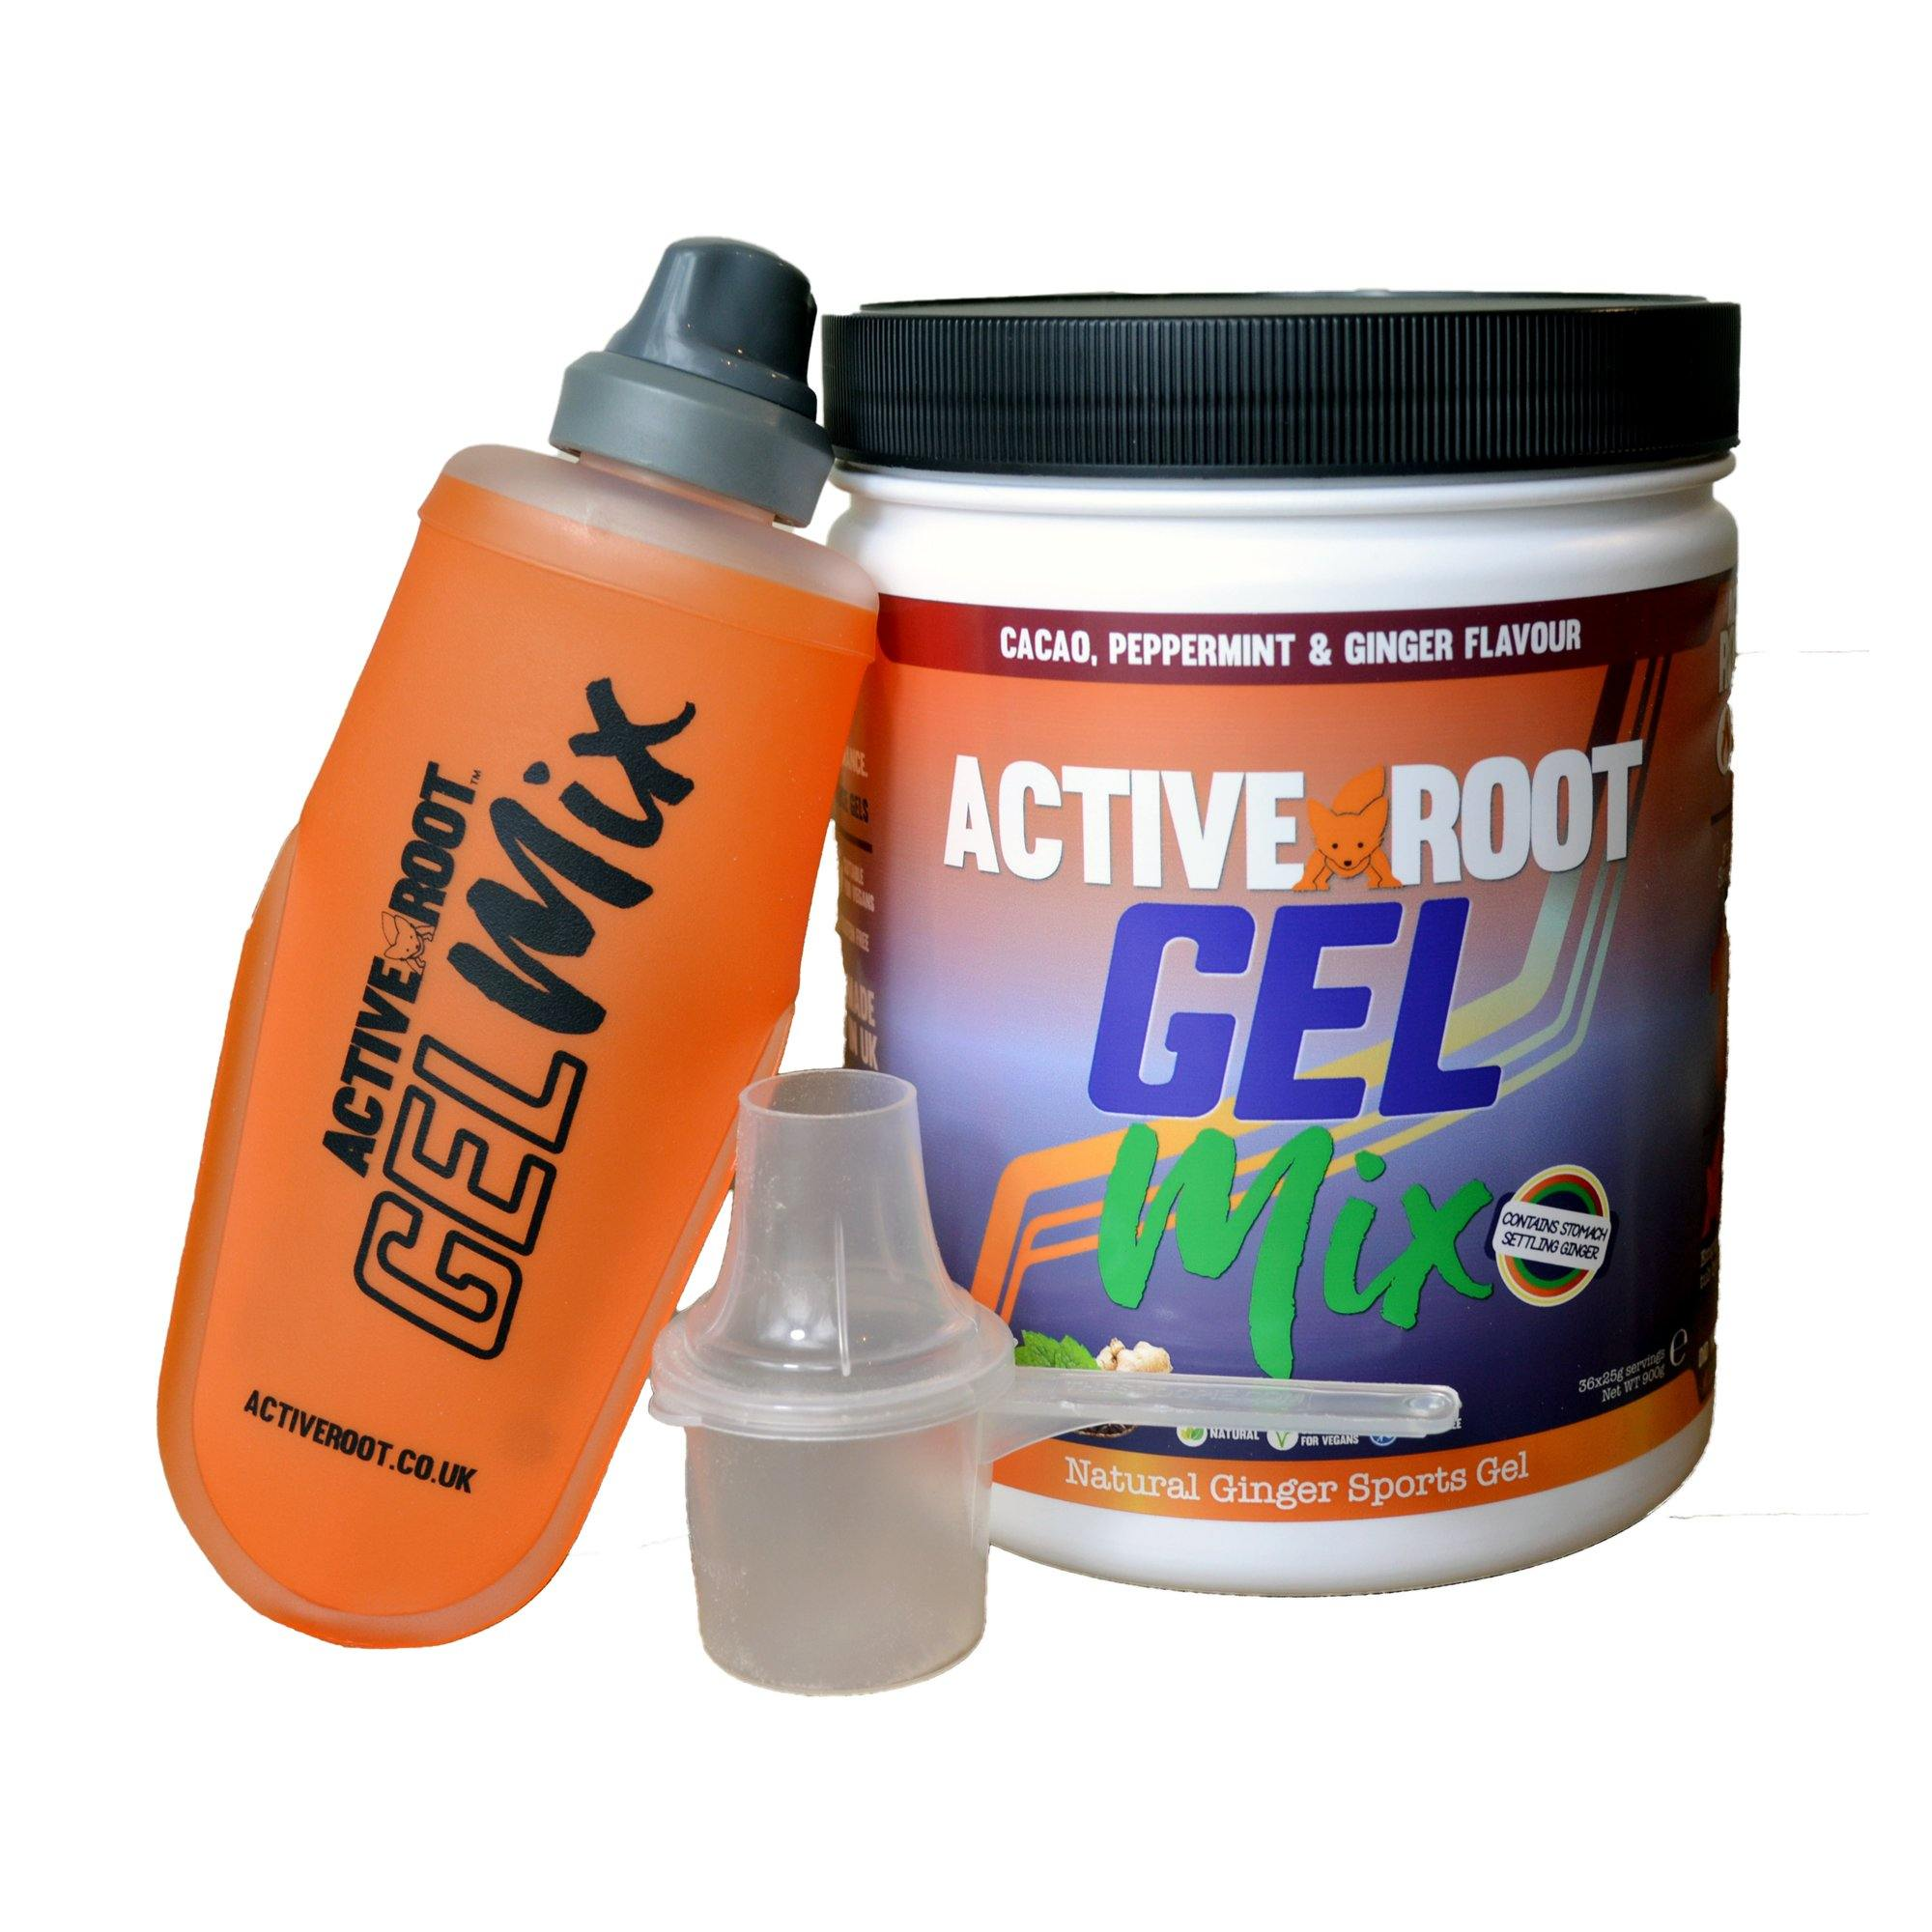 900g Gel Mix Soft Flask Bundle (36 servings)